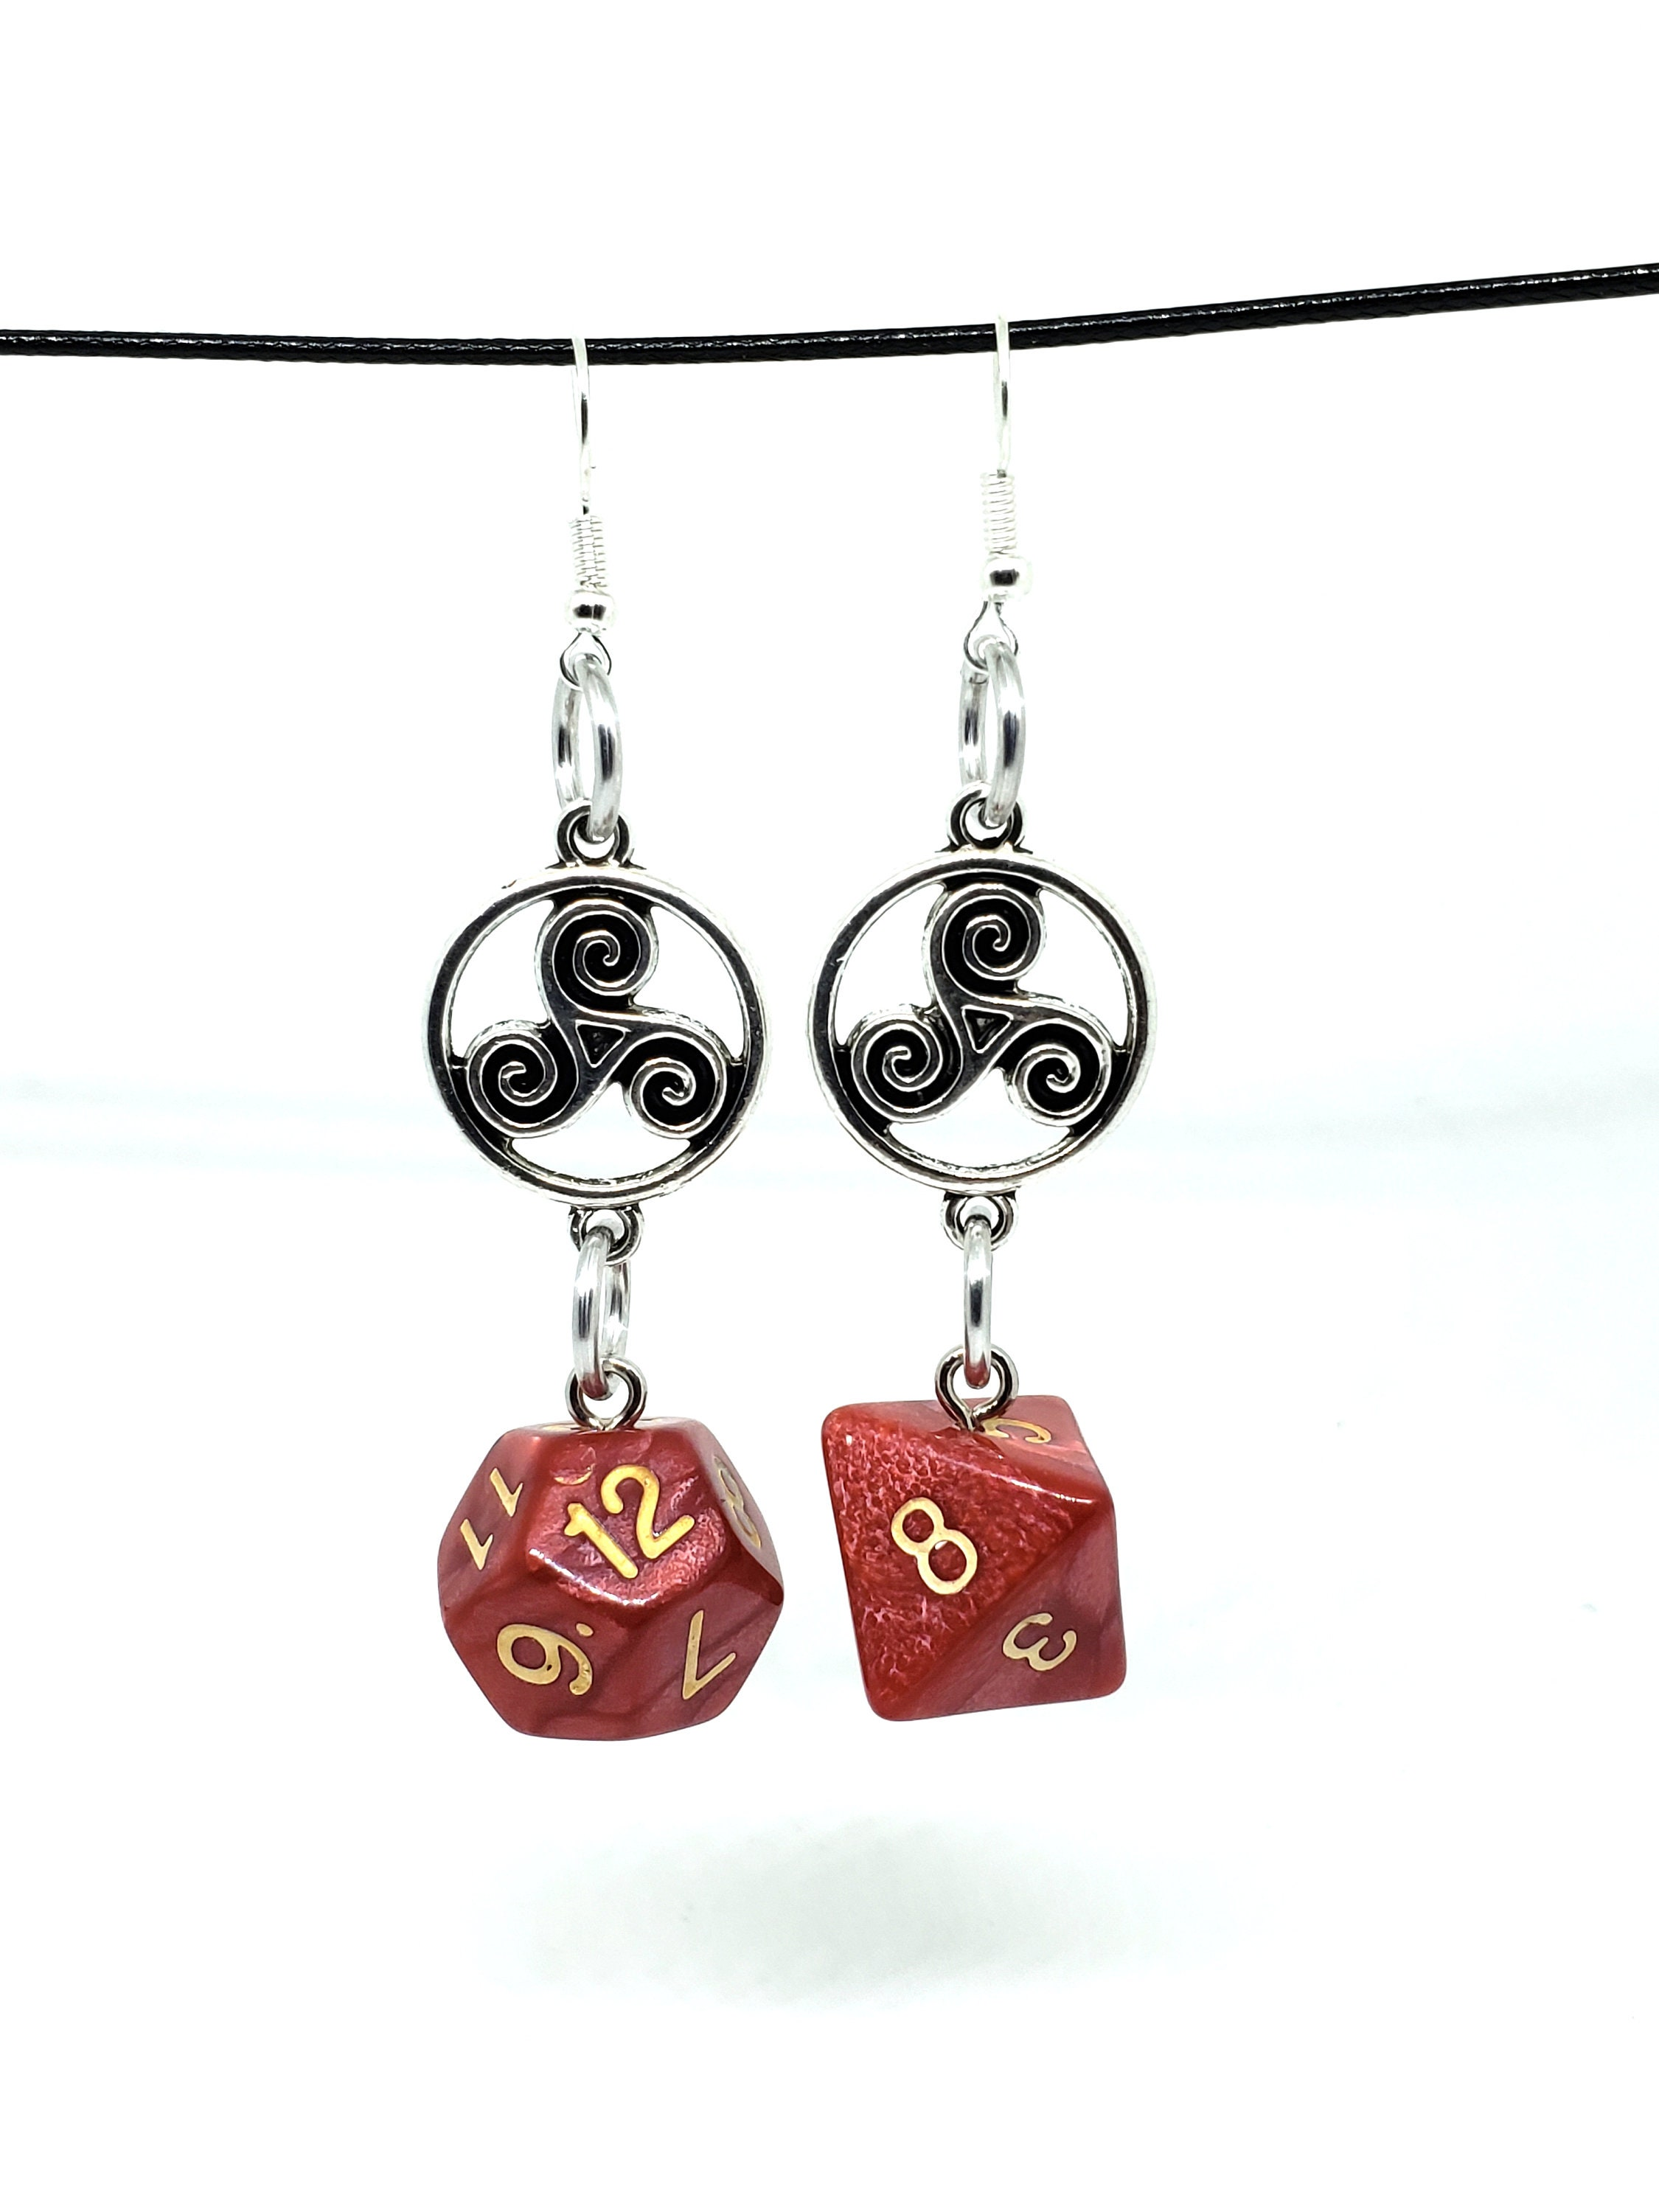 Dragonscale Red Celtic Charm Dice Earrings - D6 and D8